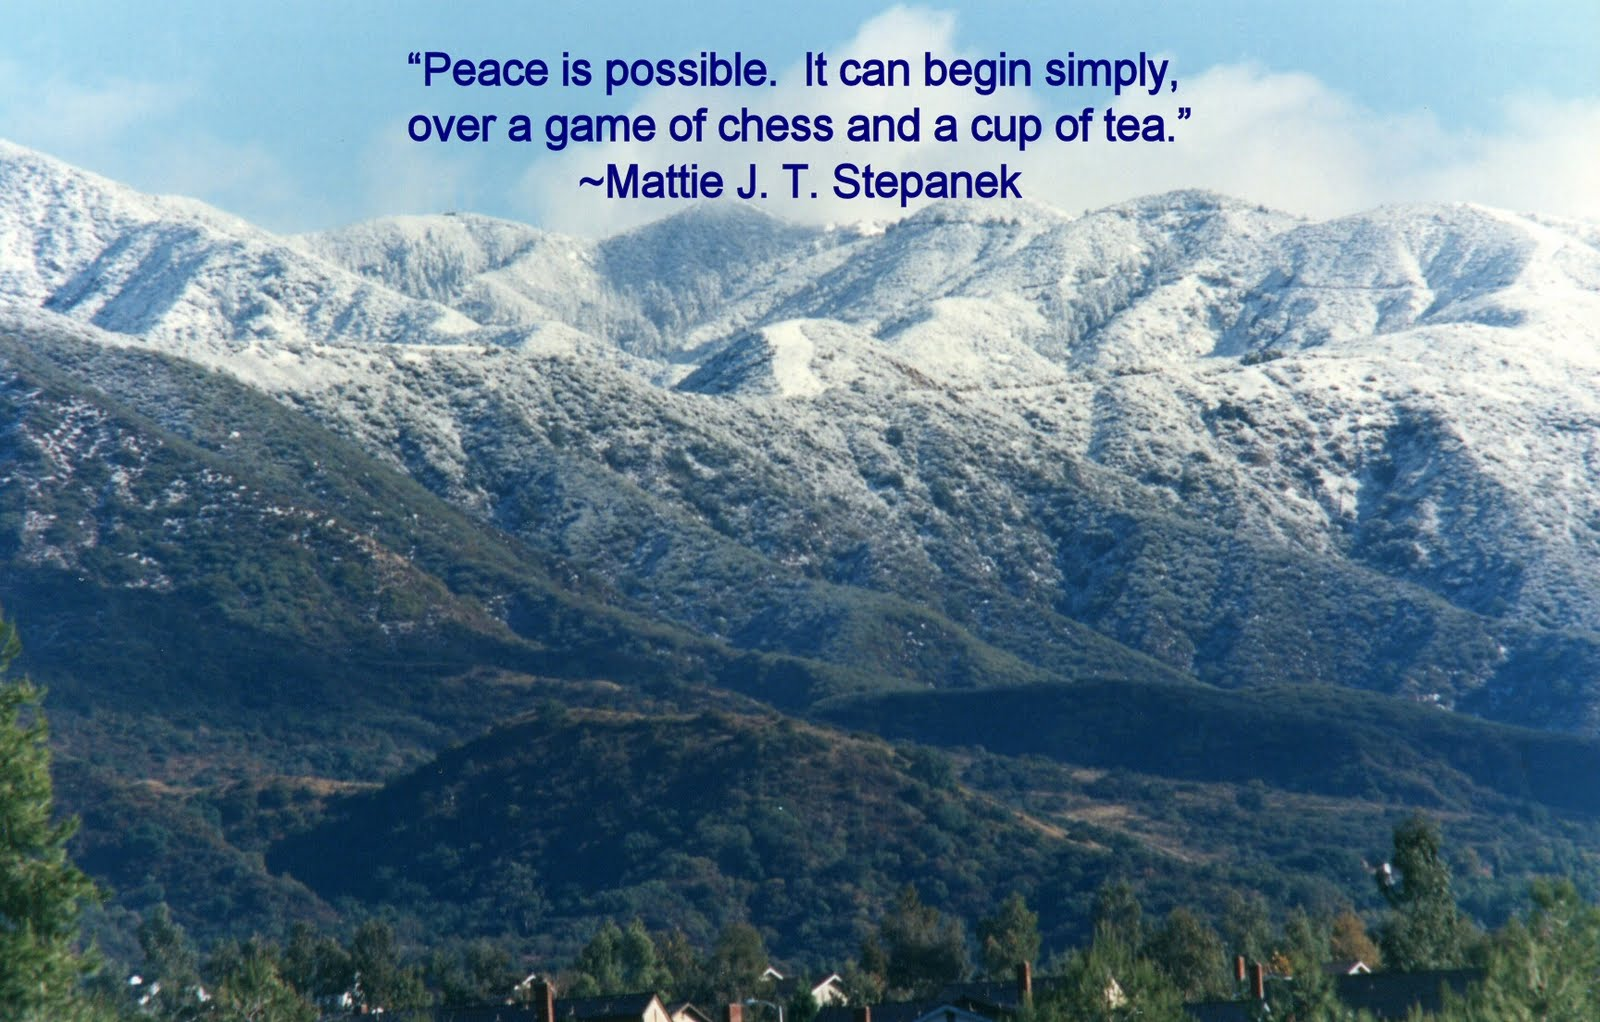 Mattie Stepanek's quote #3